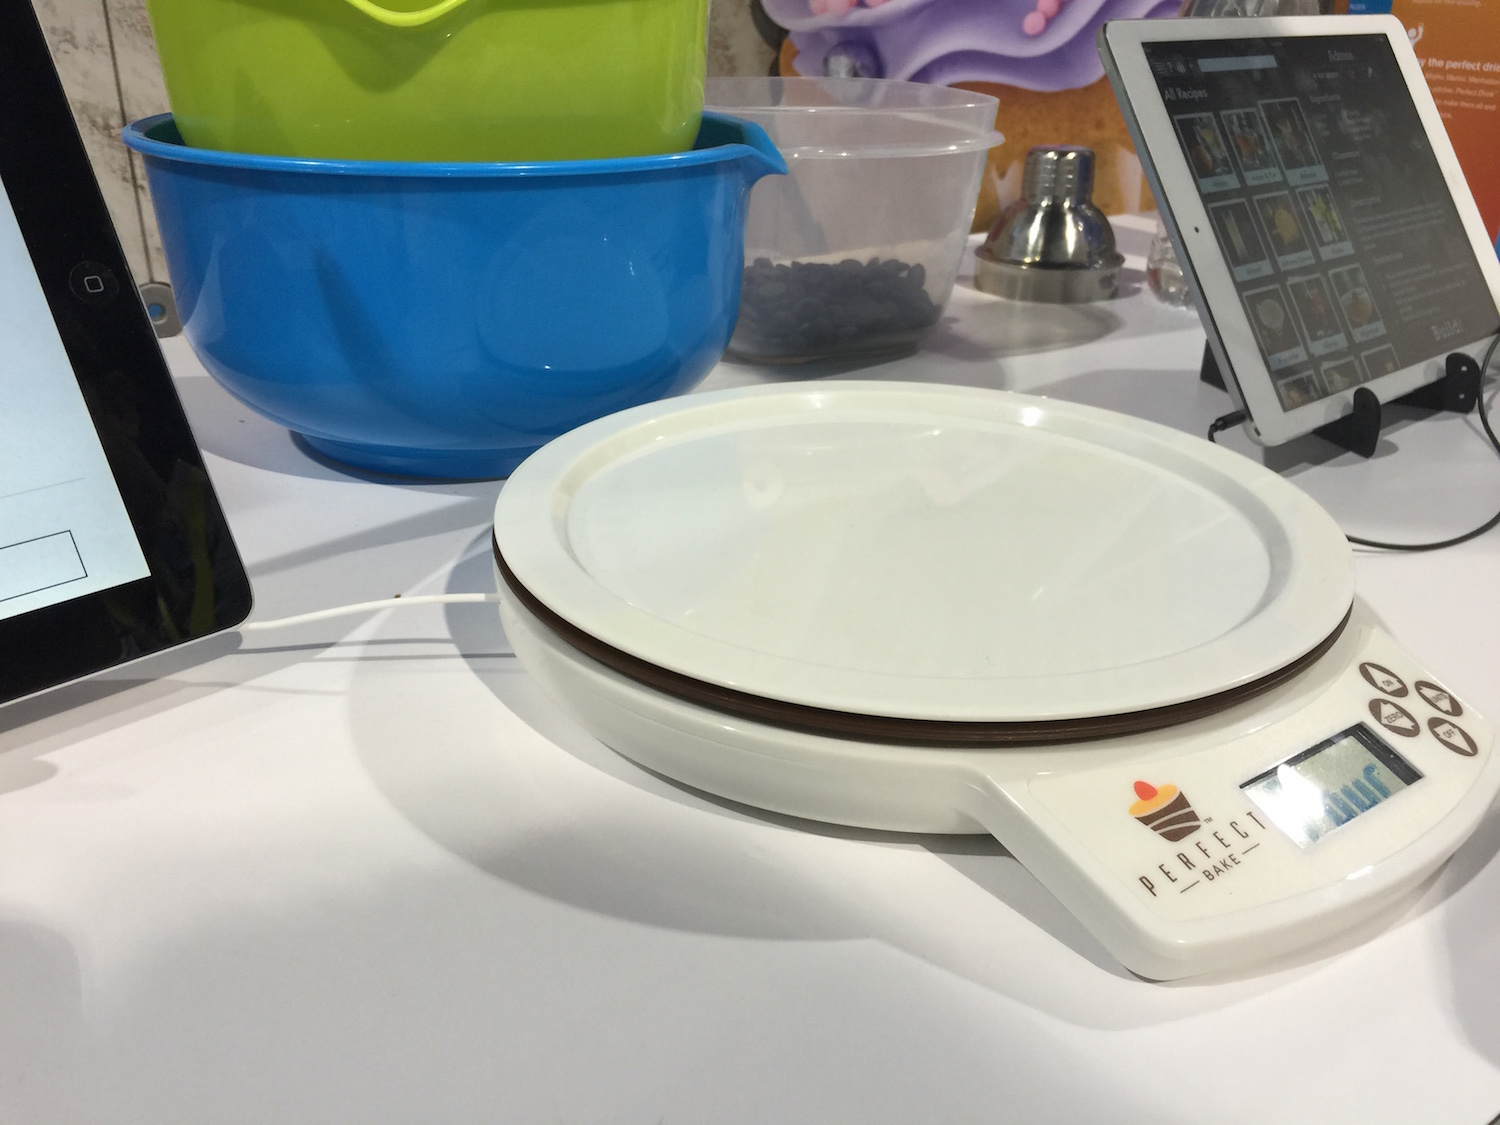 Ces 2015 in pictures gadget makers want to make your life for Perfect bake scale system